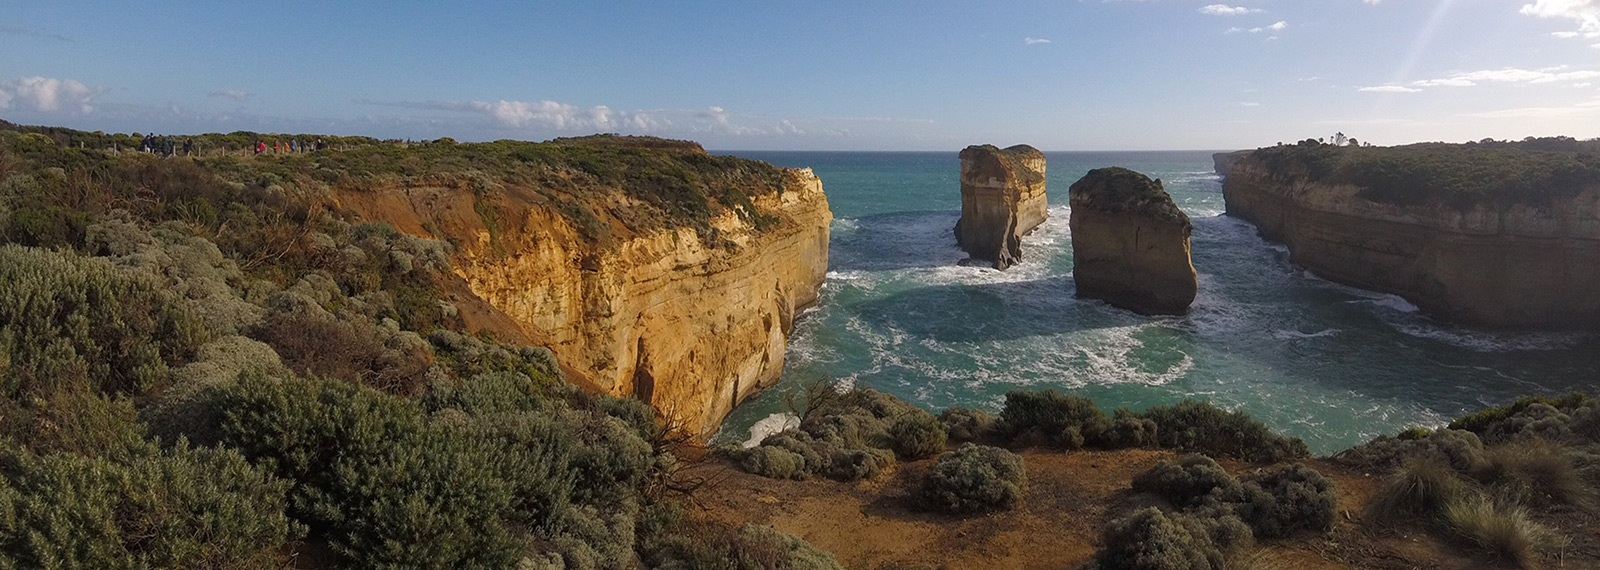 Discover Australia - Melbourne and Sydney, and their fantastic surroundings - travel guide